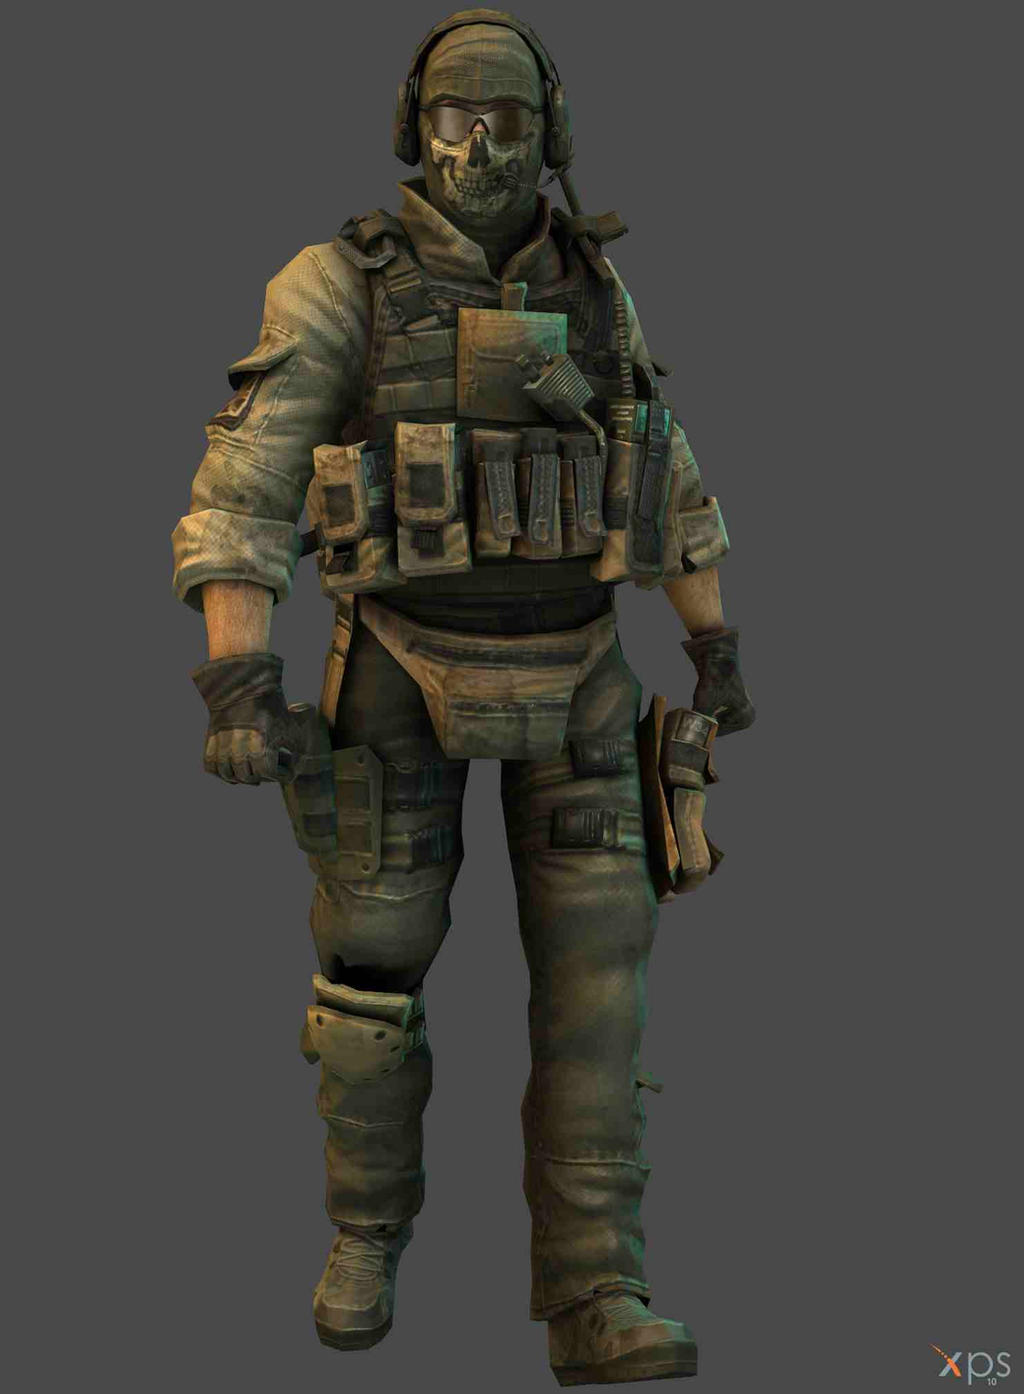 CoD MW3 : Price by Sticklove on DeviantArt